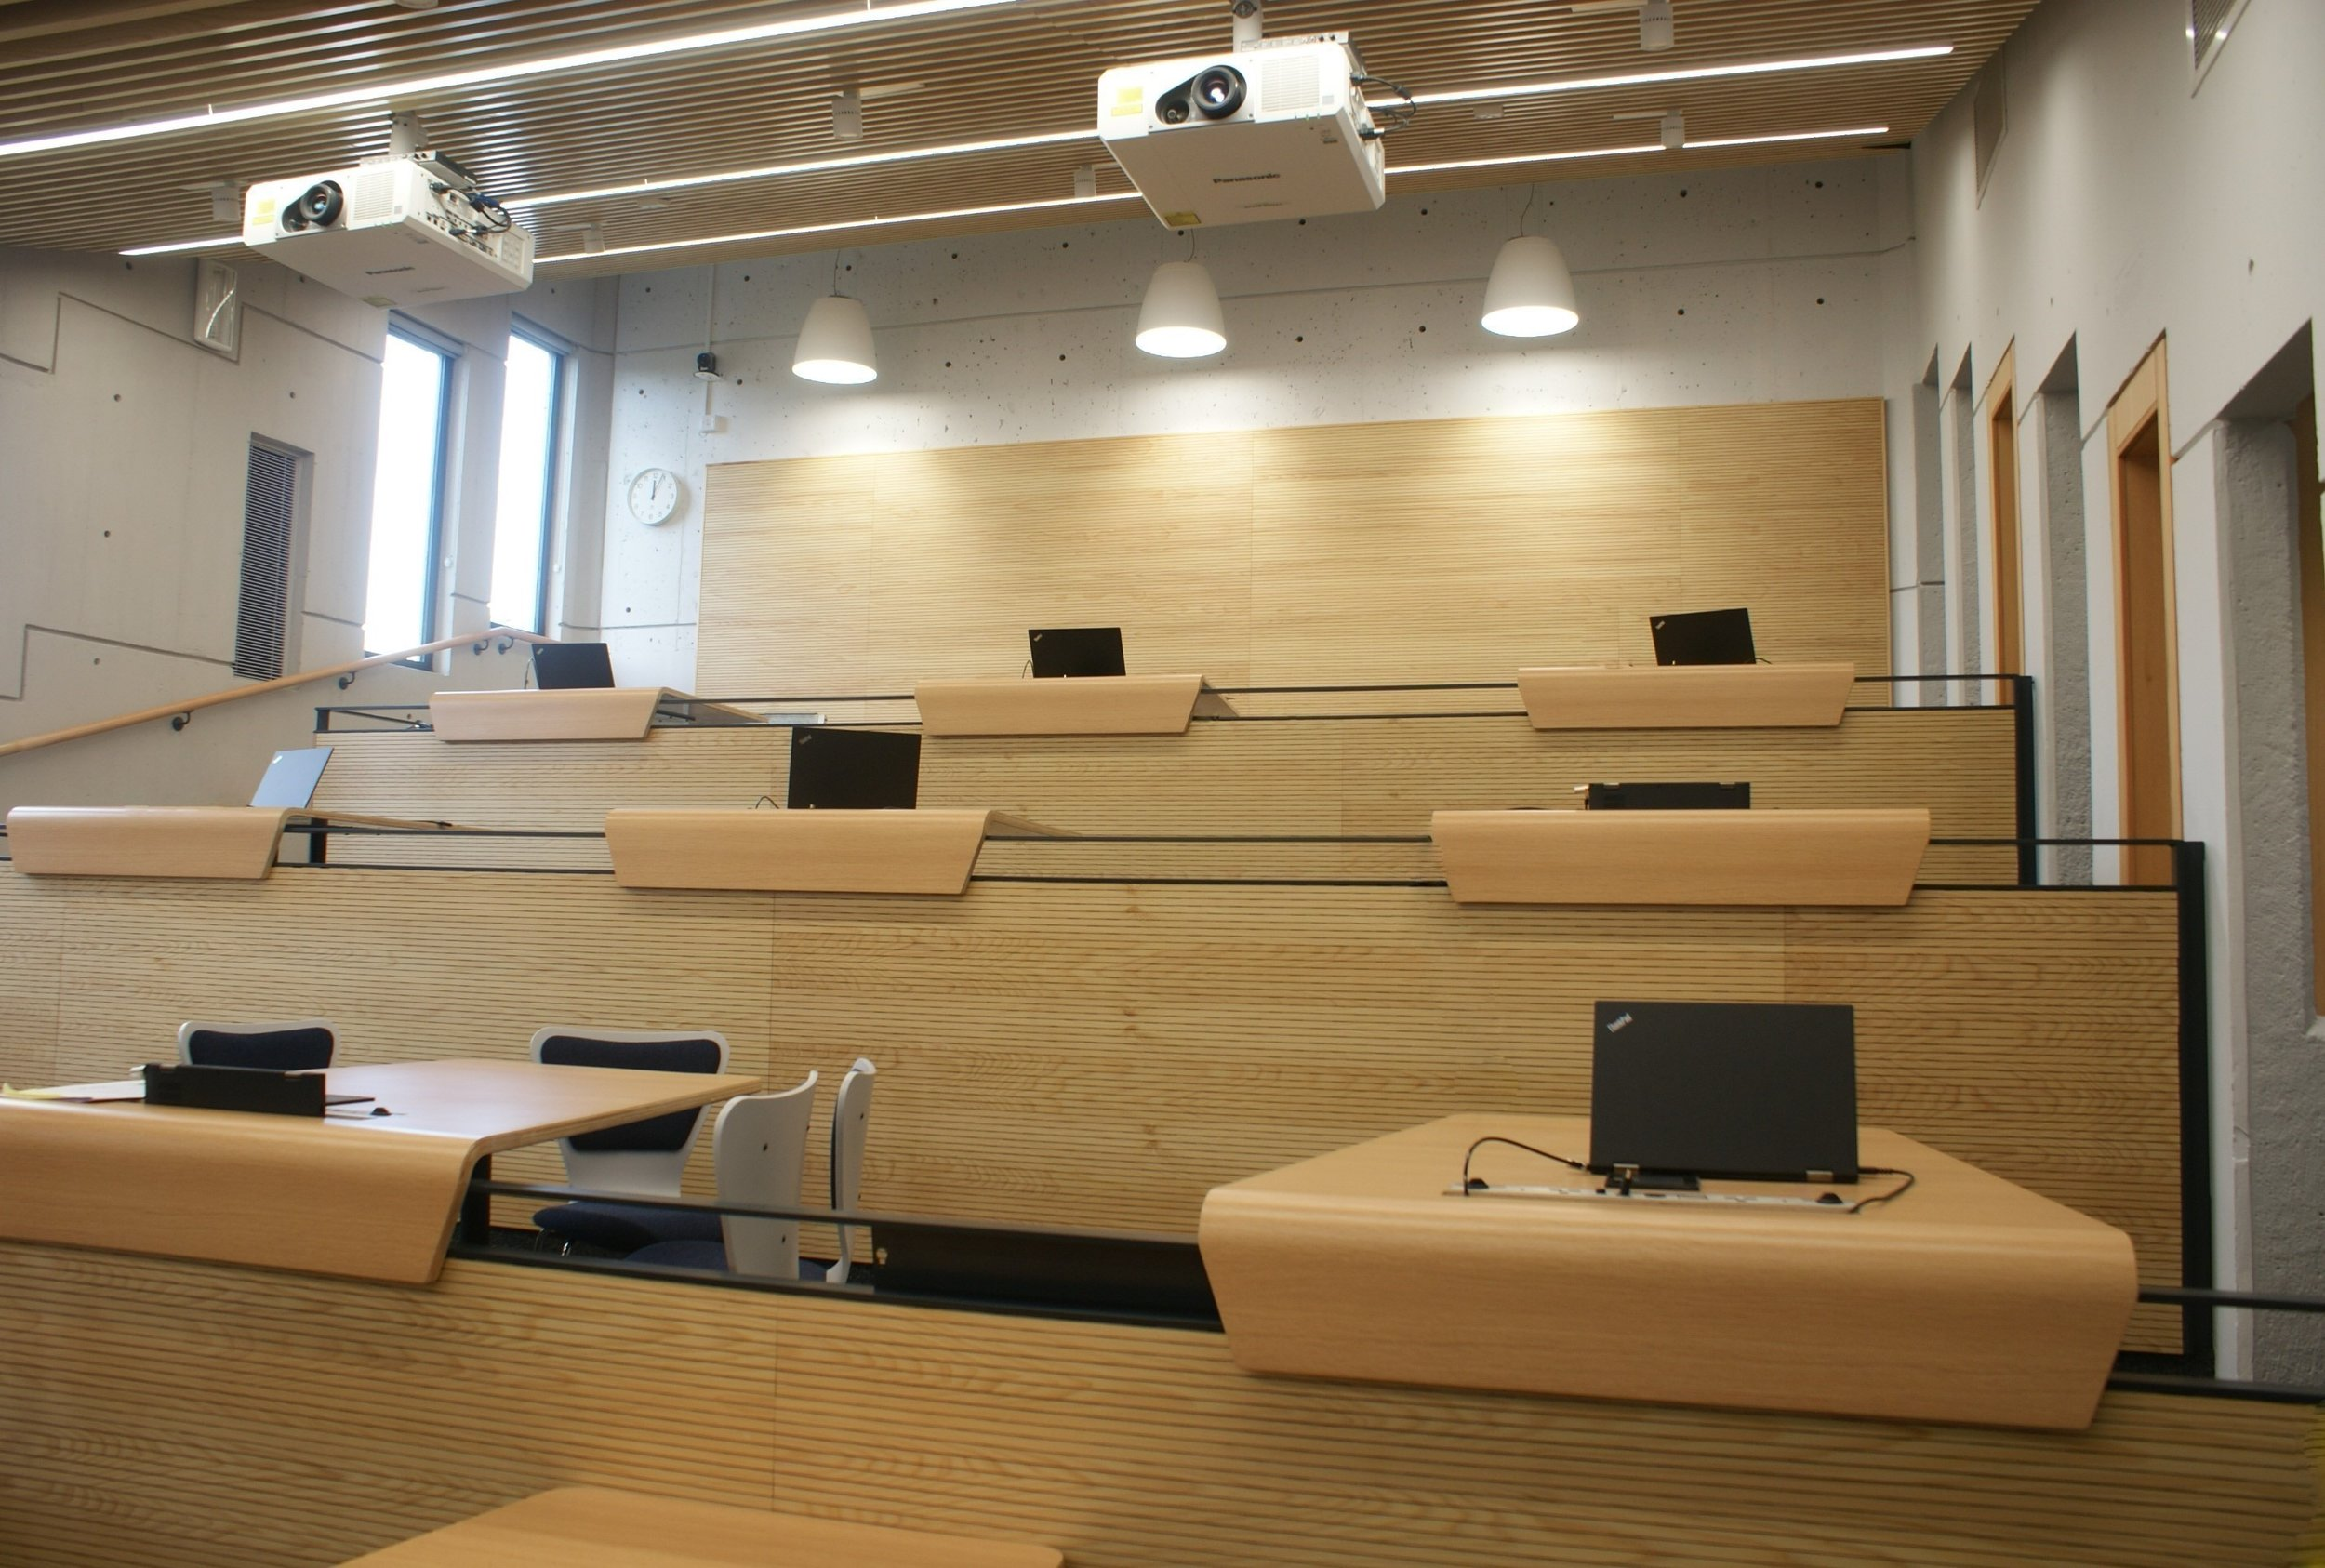 The completed Roger Stevens Lecture Theatre 8.